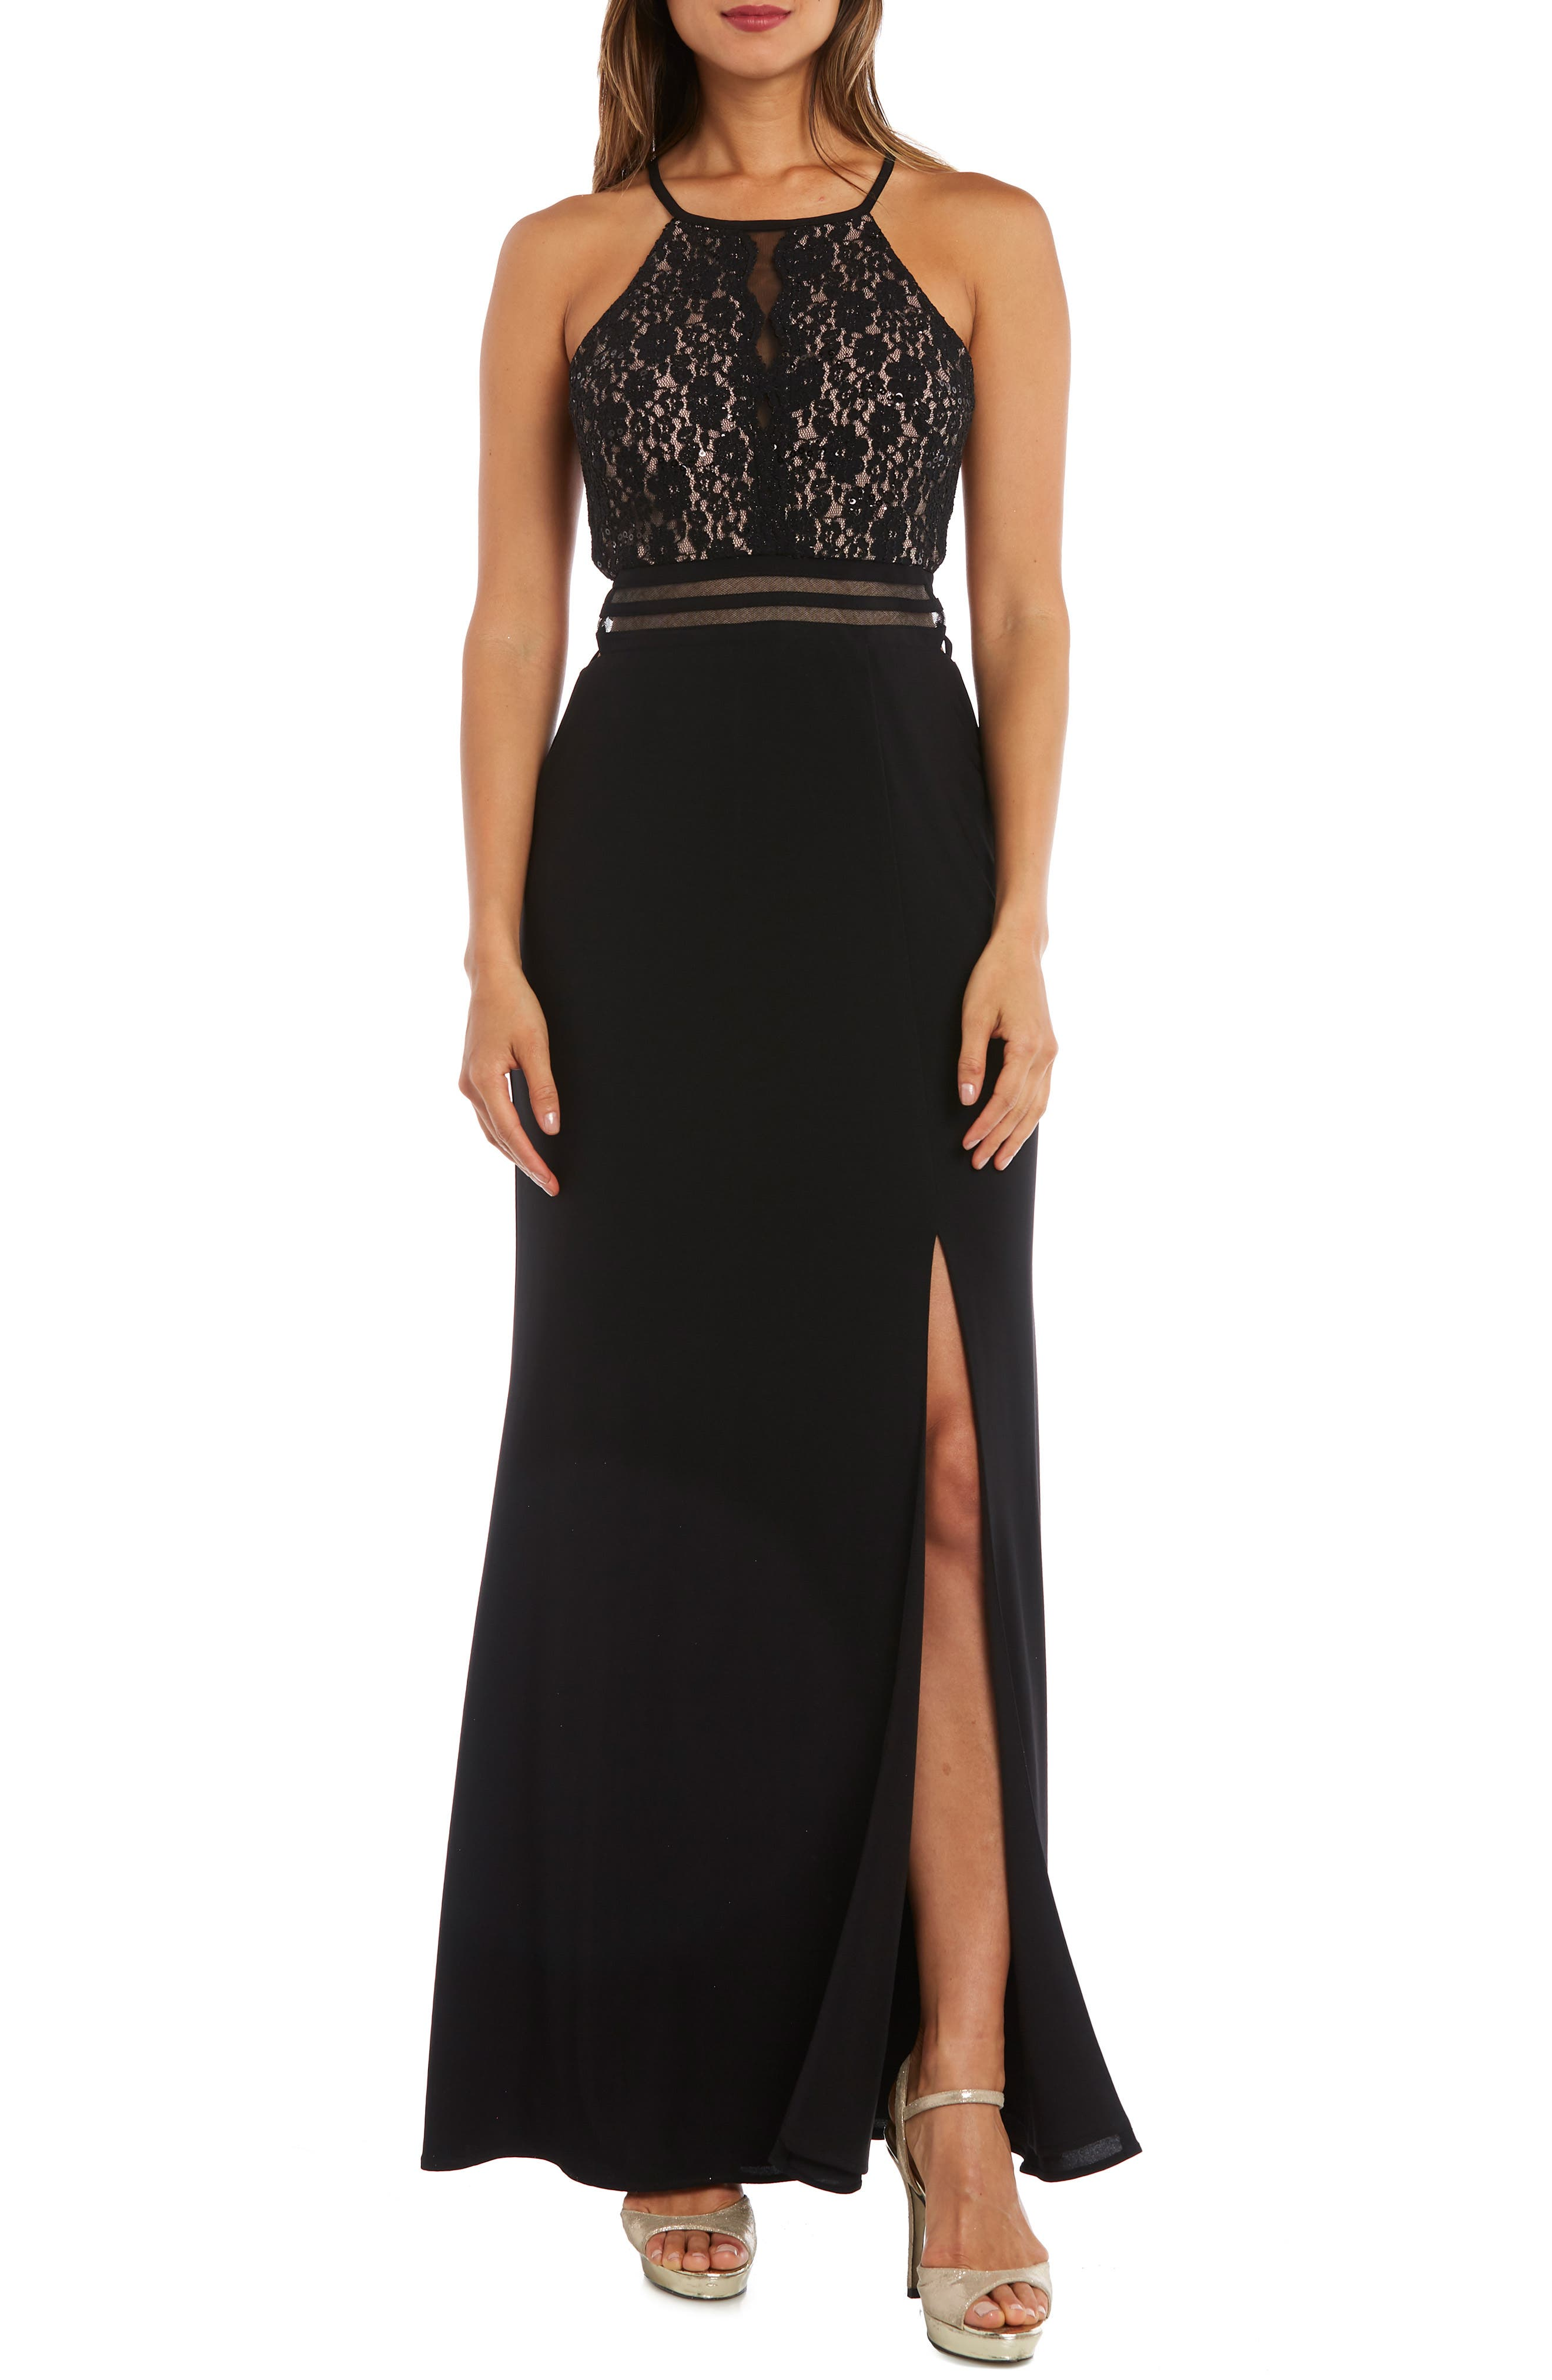 MORGAN & CO.,                             Strappy Lace Bodice Gown,                             Main thumbnail 1, color,                             BLACK/ NUDE